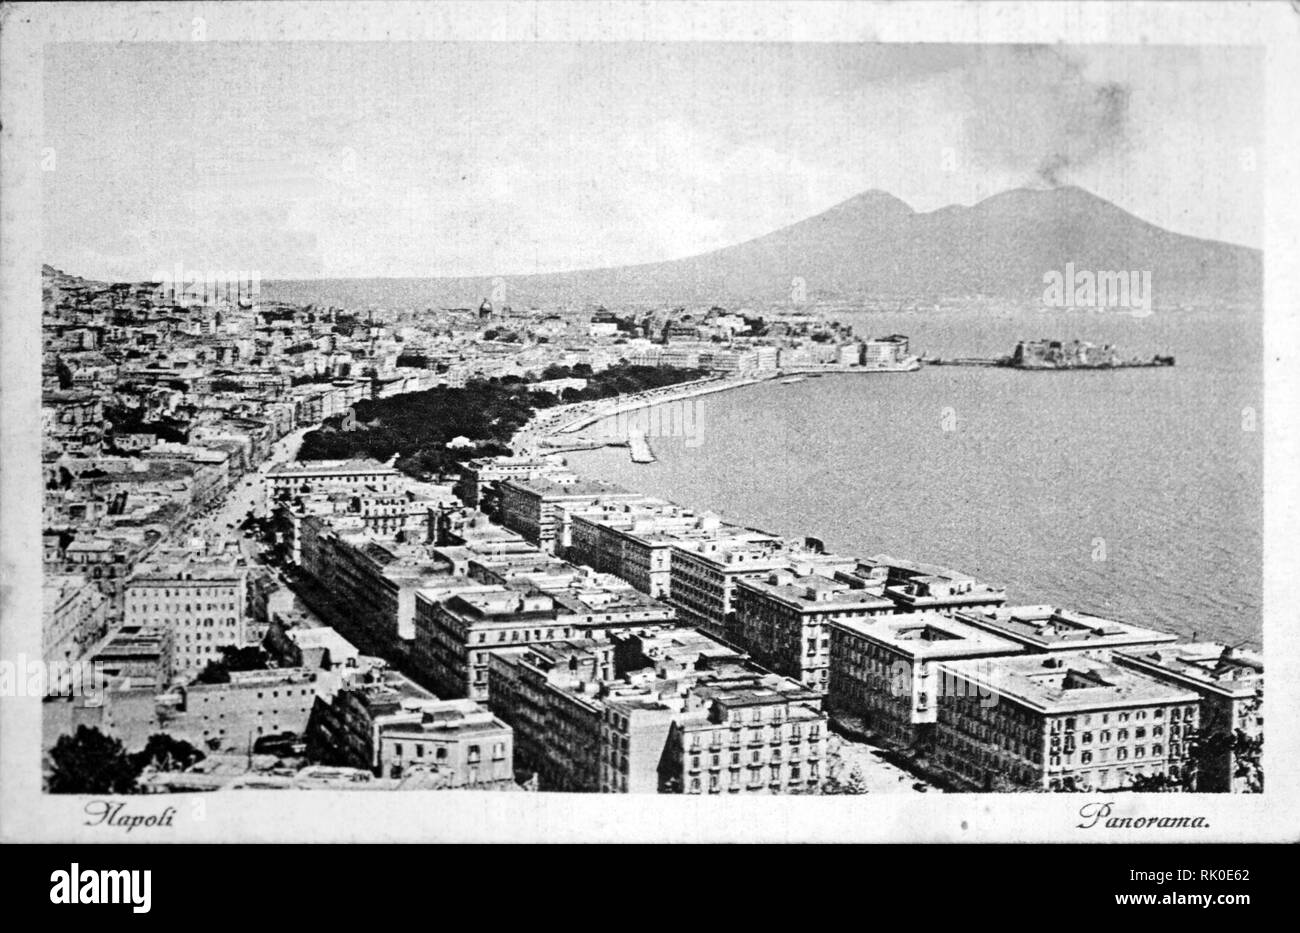 Vintage postcard of Naples, Italy 1935 about - Stock Image